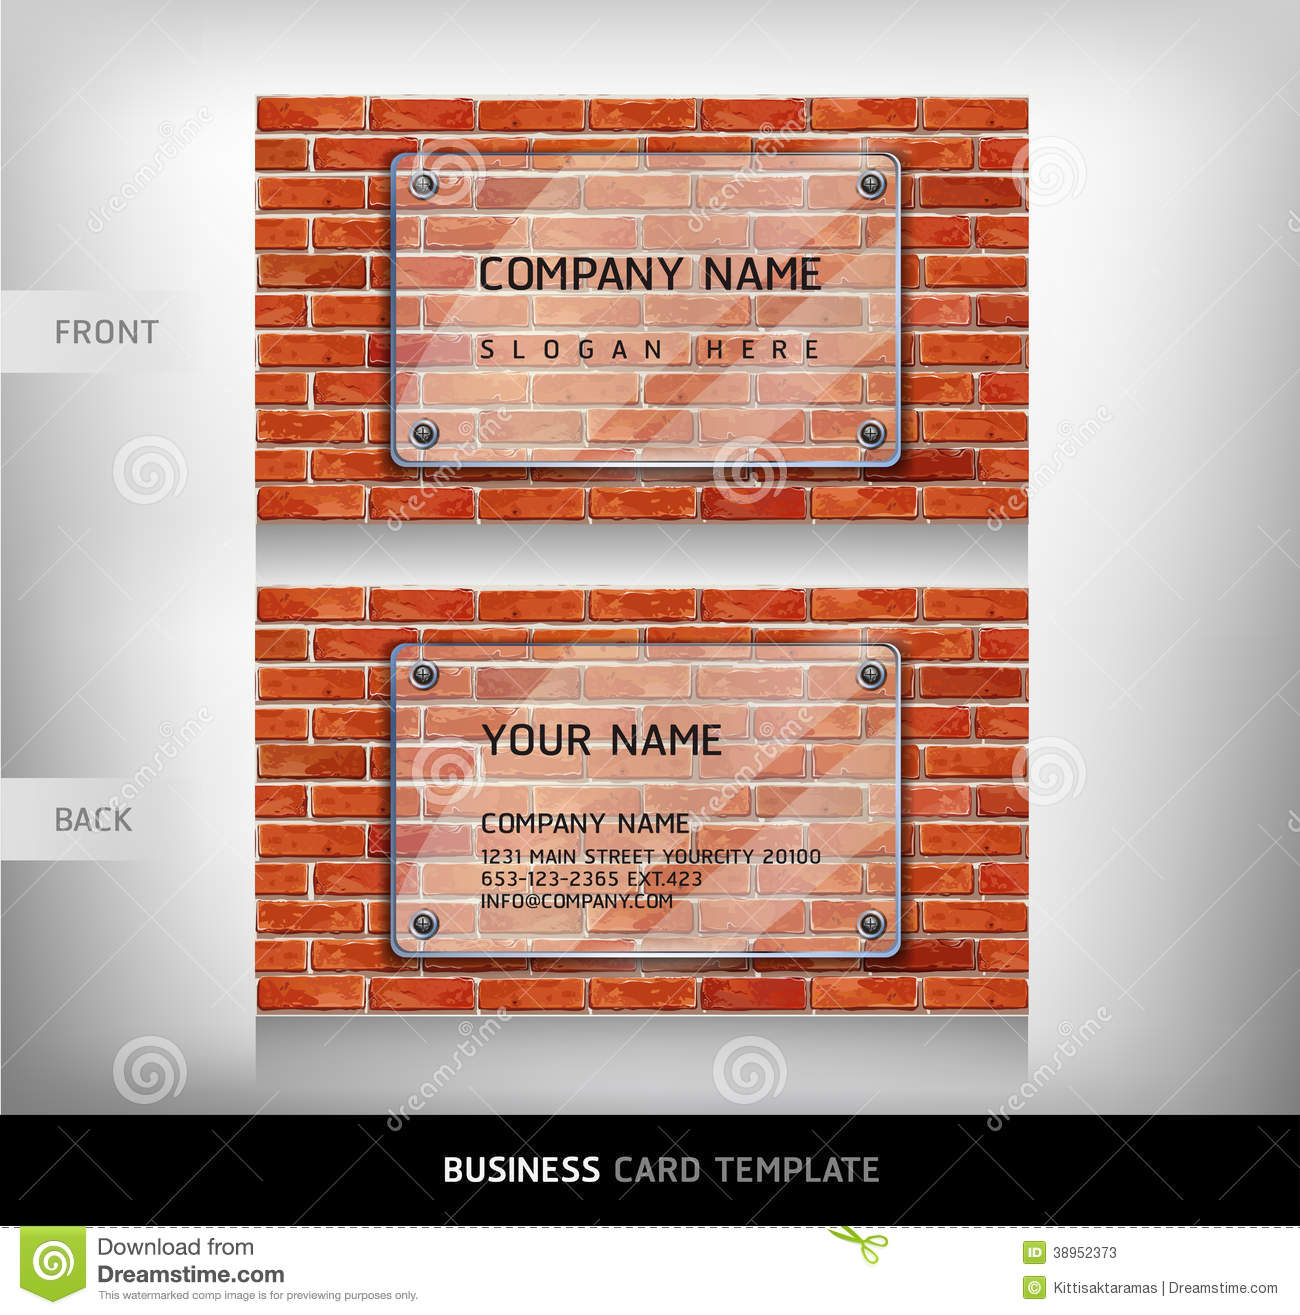 Download Carte De Visite Professionnelle Rouge Mur Briques Illustration Stock